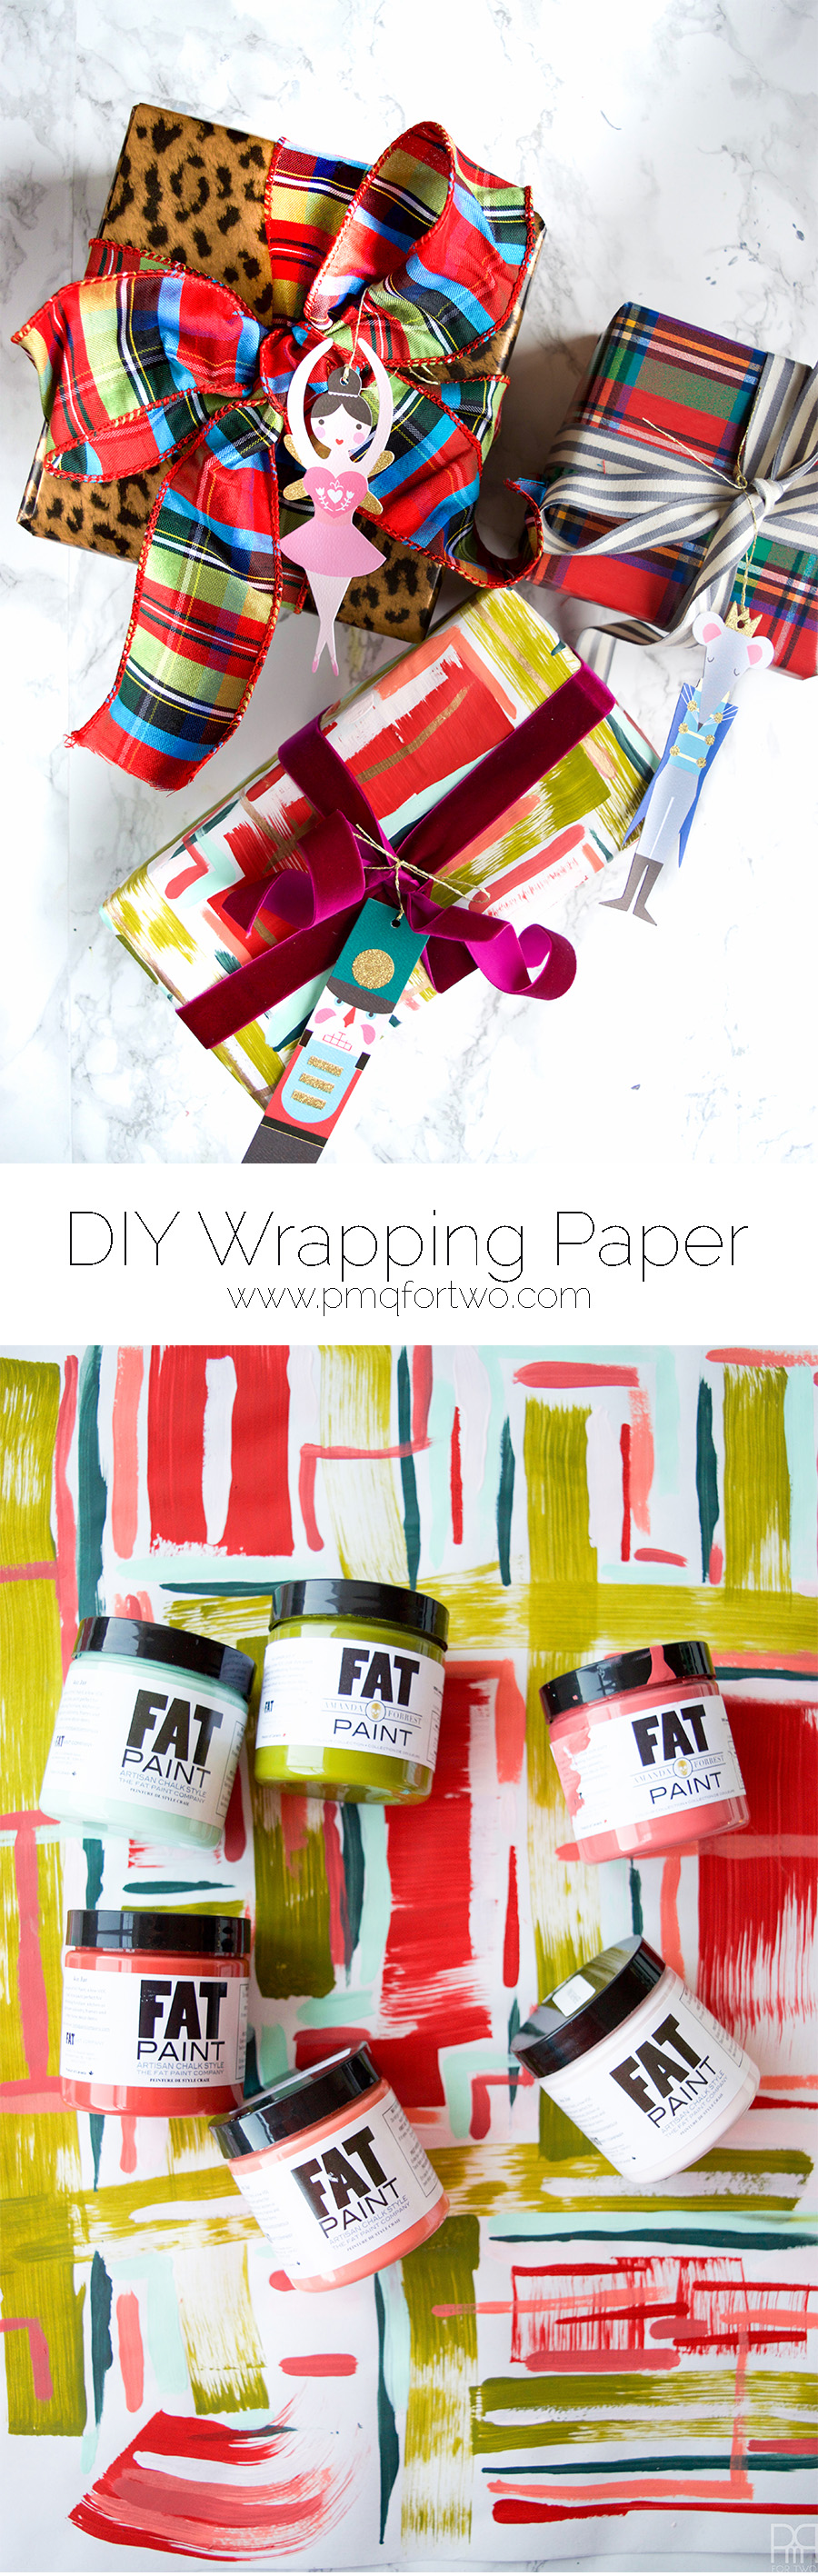 diy-wrapping-paper